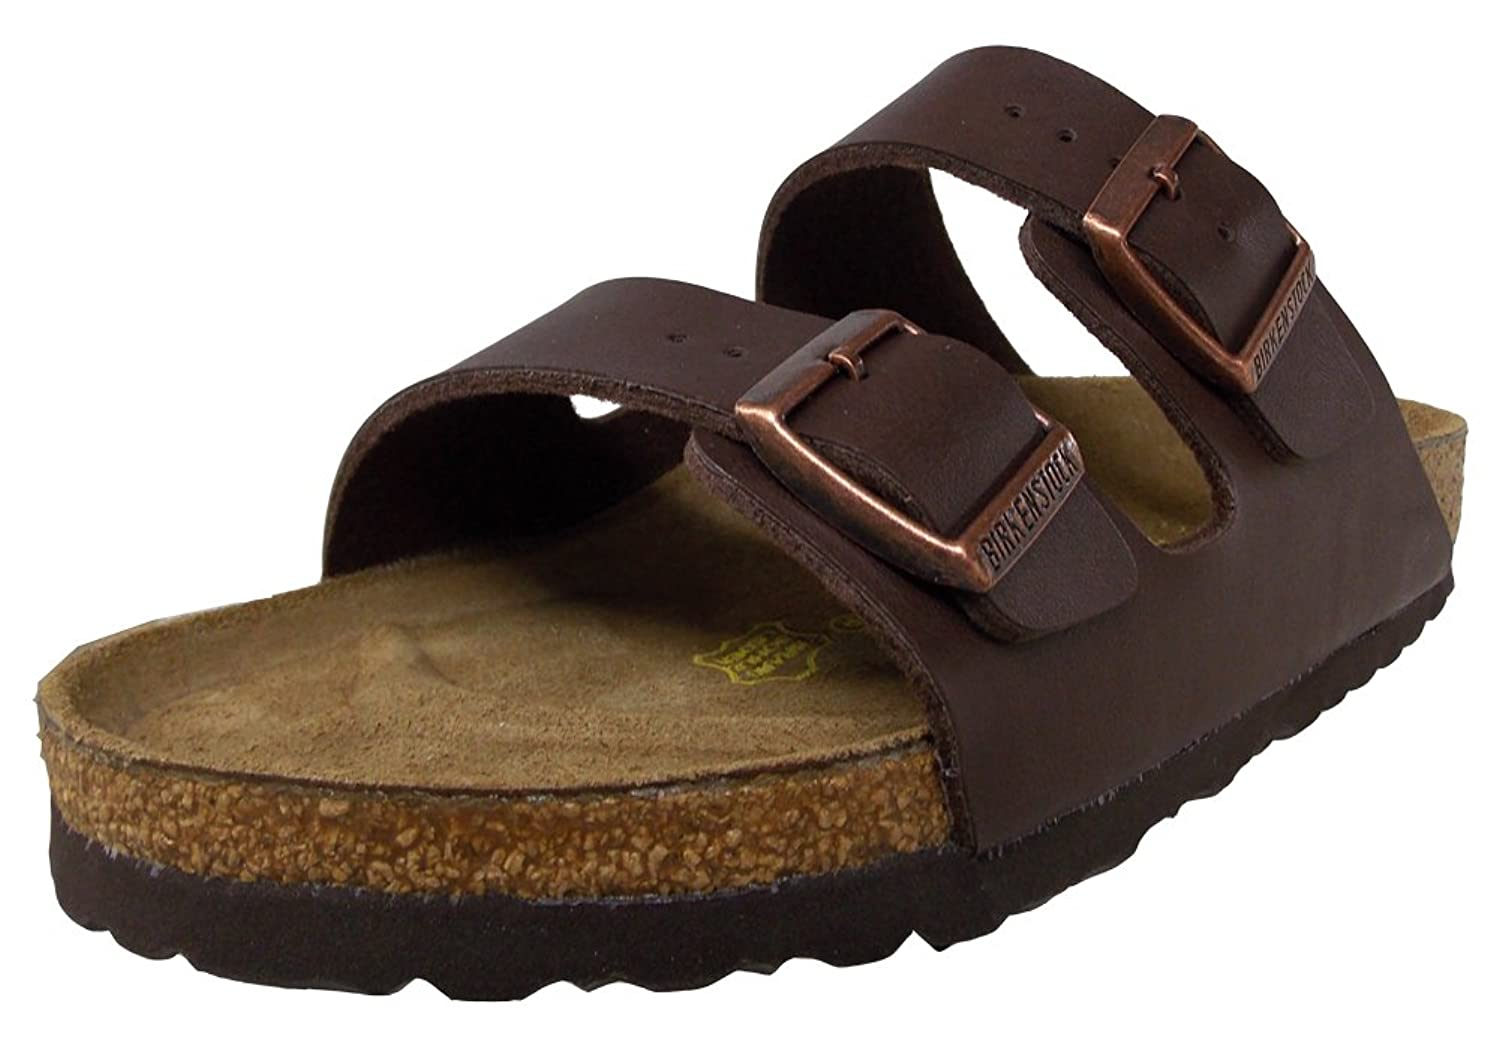 Birkenstock Unisex Arizona Soft Footbed Sandal любовь на крыше поезда